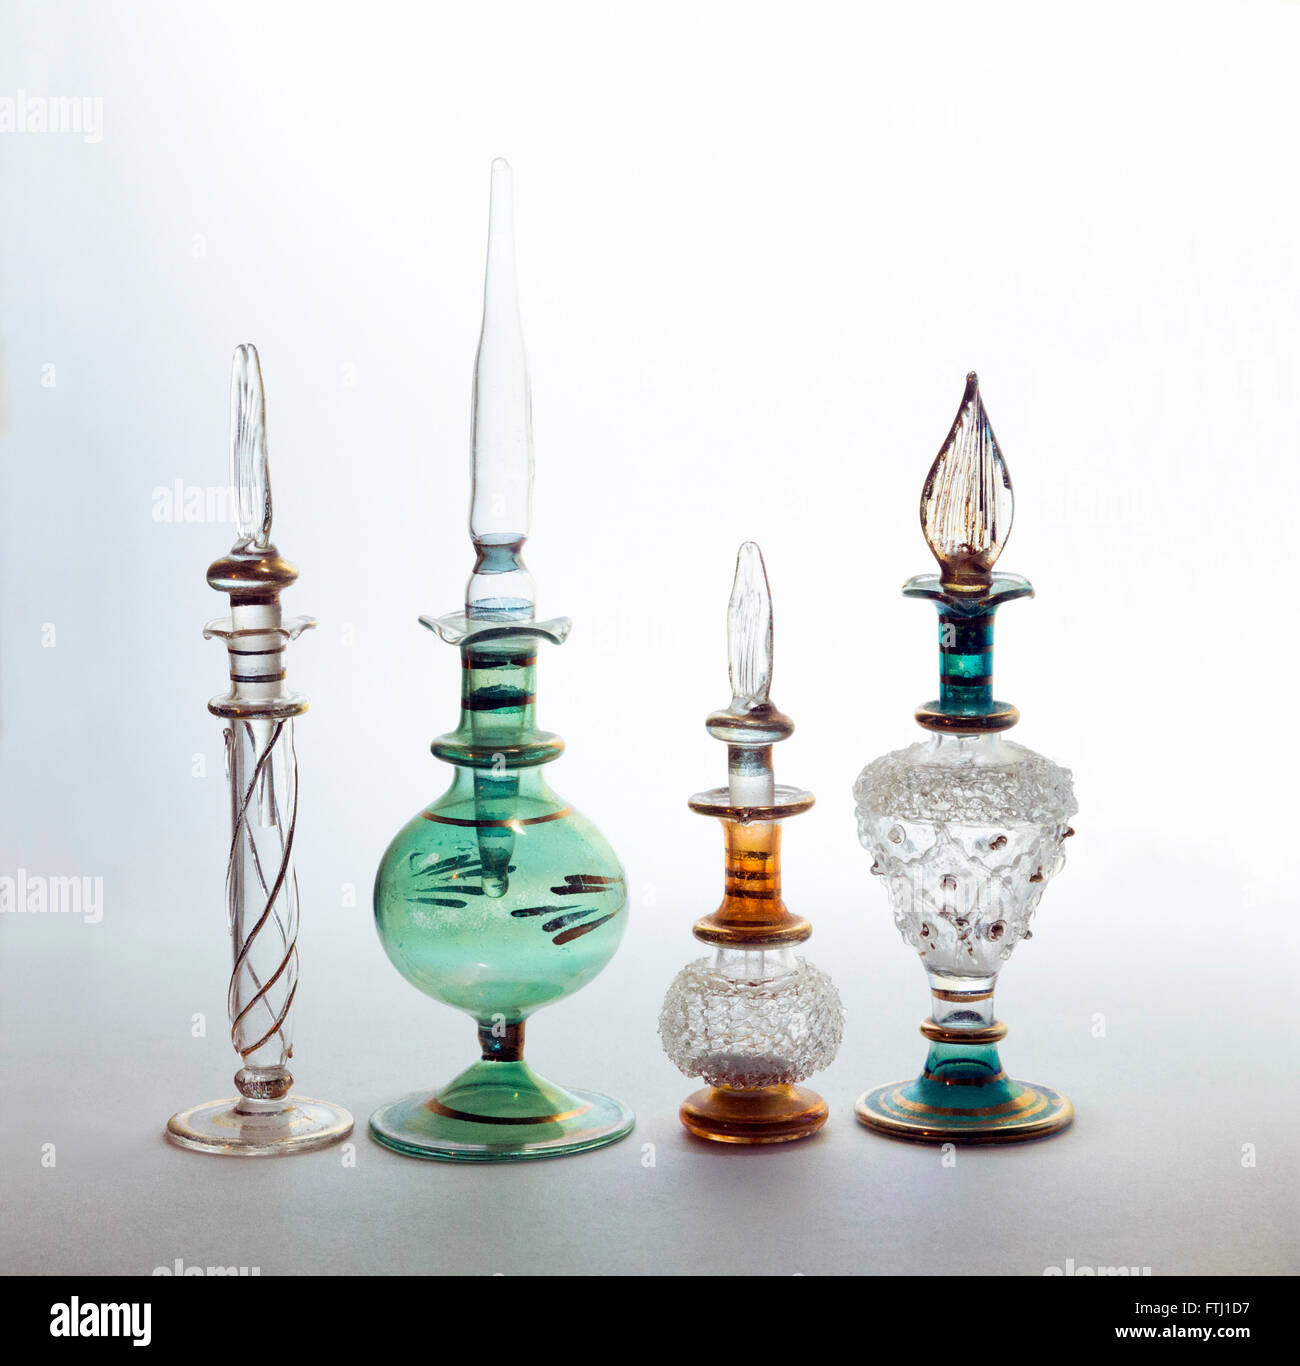 Egyptian perfume / scent bottles with droppers Stock Photo